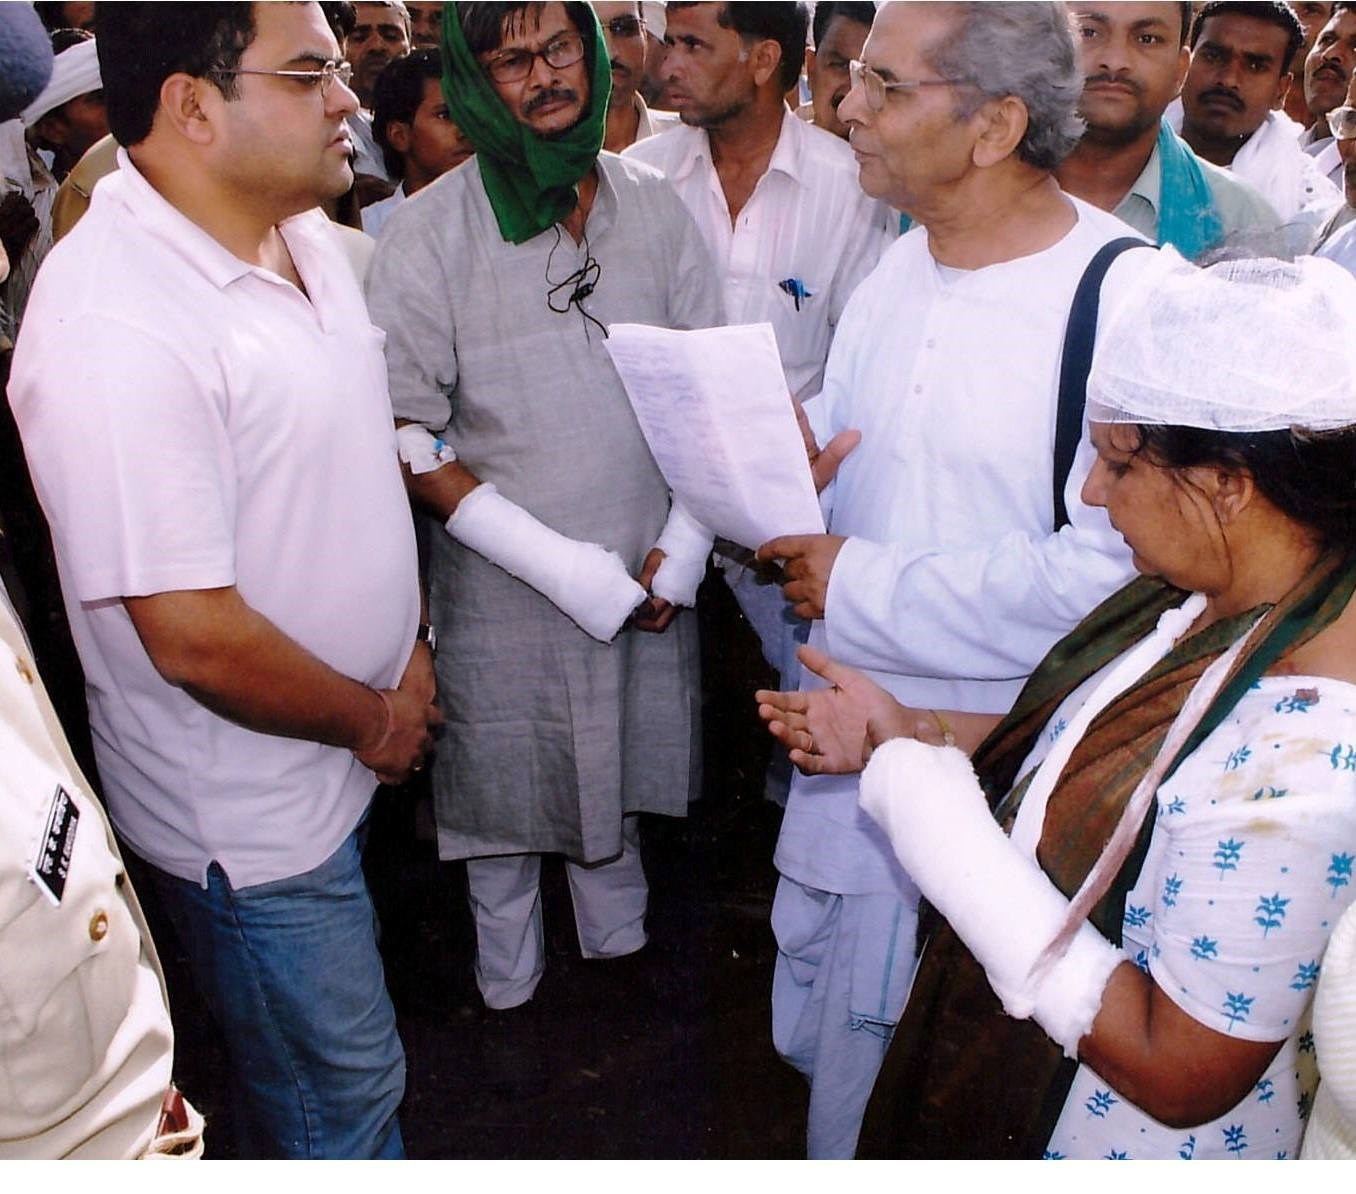 Protest leaders, including Aradhana Bhargav, confront a state official in the days after being assaulted in 2010. Image courtesy KSS